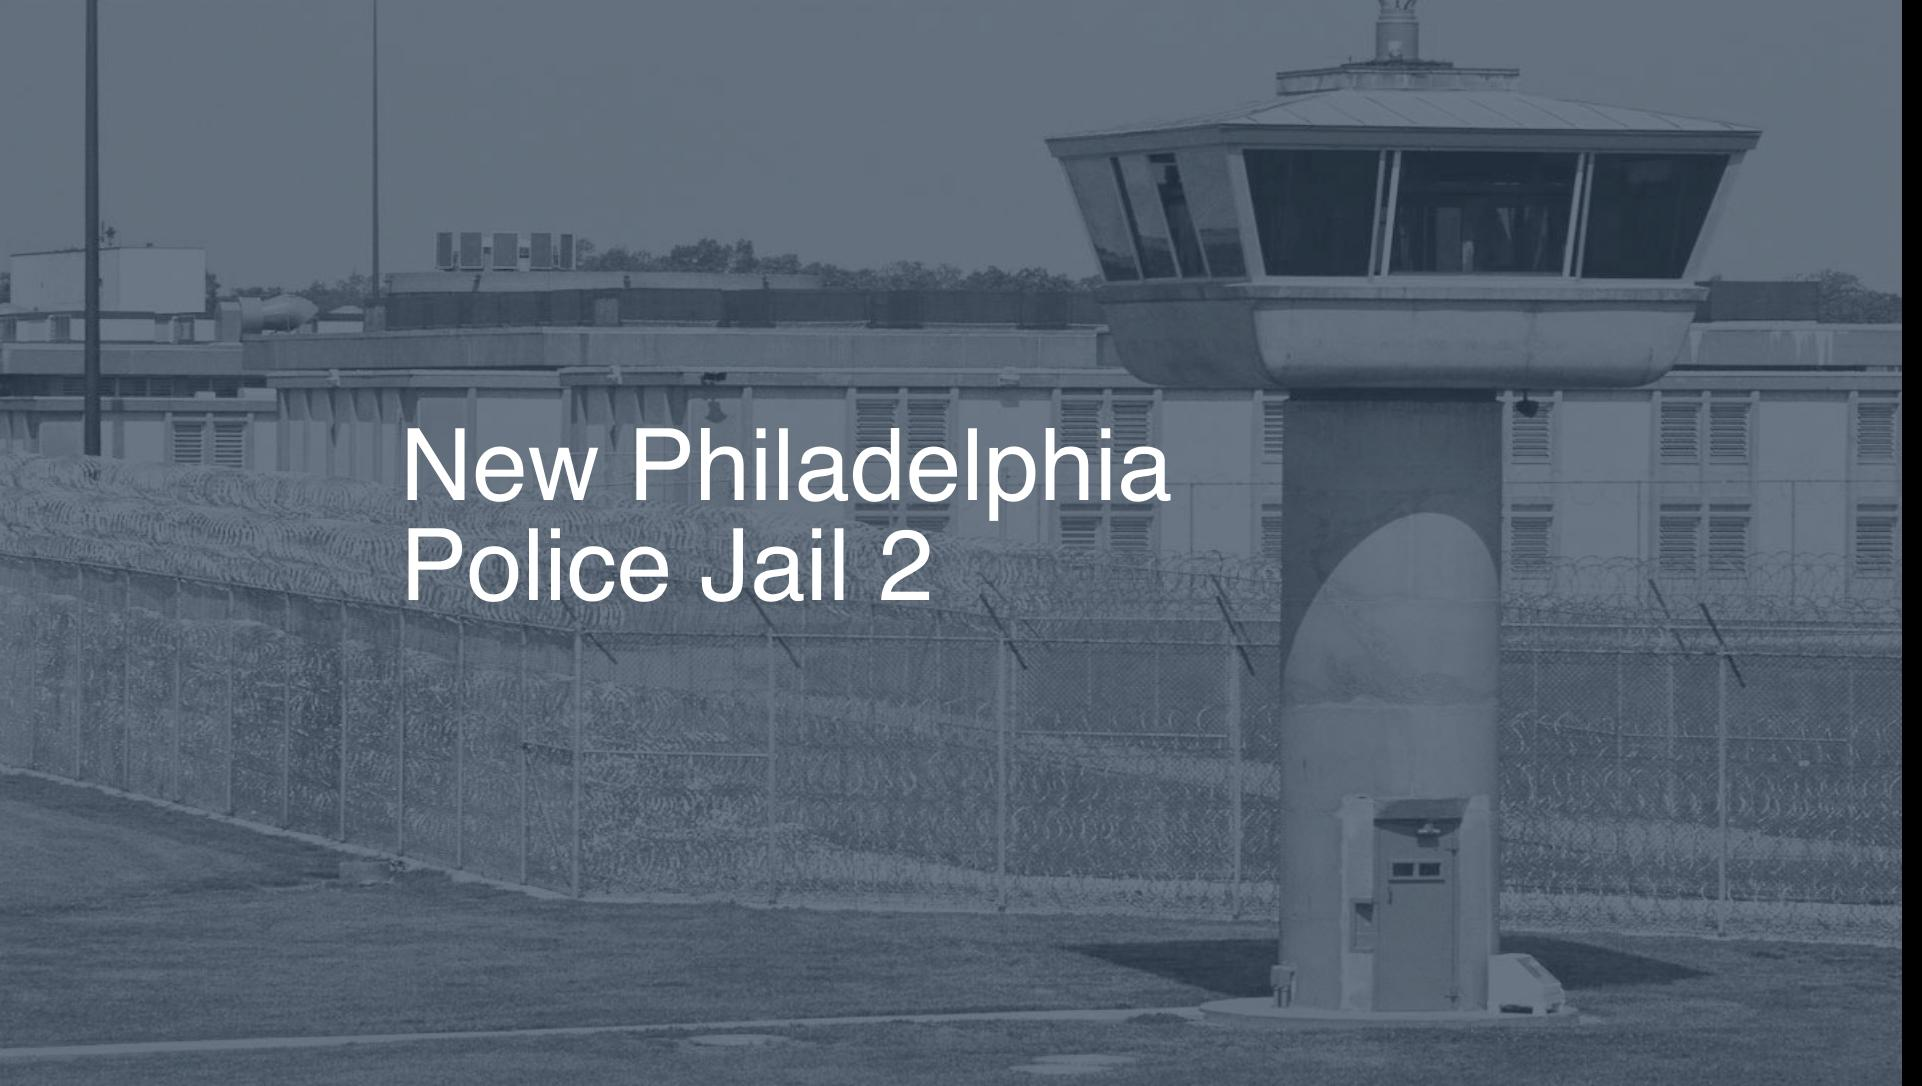 New Philadelphia Police Jail correctional facility picture